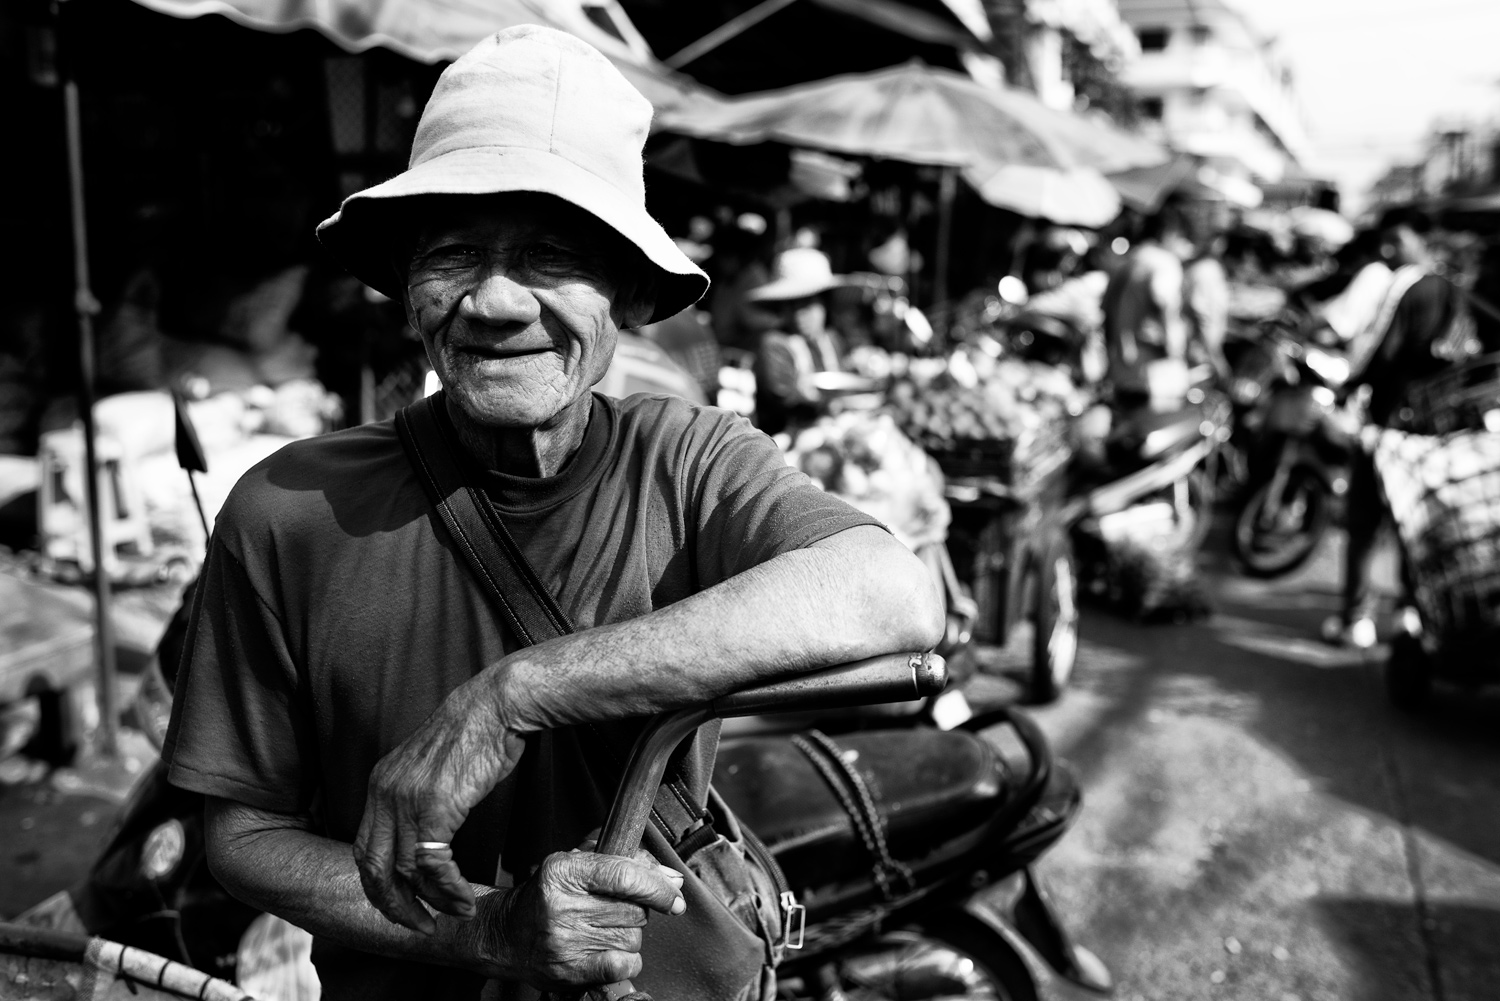 https://i0.wp.com/digital-photography-school.com/wp-content/uploads/2018/10/Happy-Market-Porter-in-Chiang-Mai.jpg?resize=1500%2C1001&ssl=1